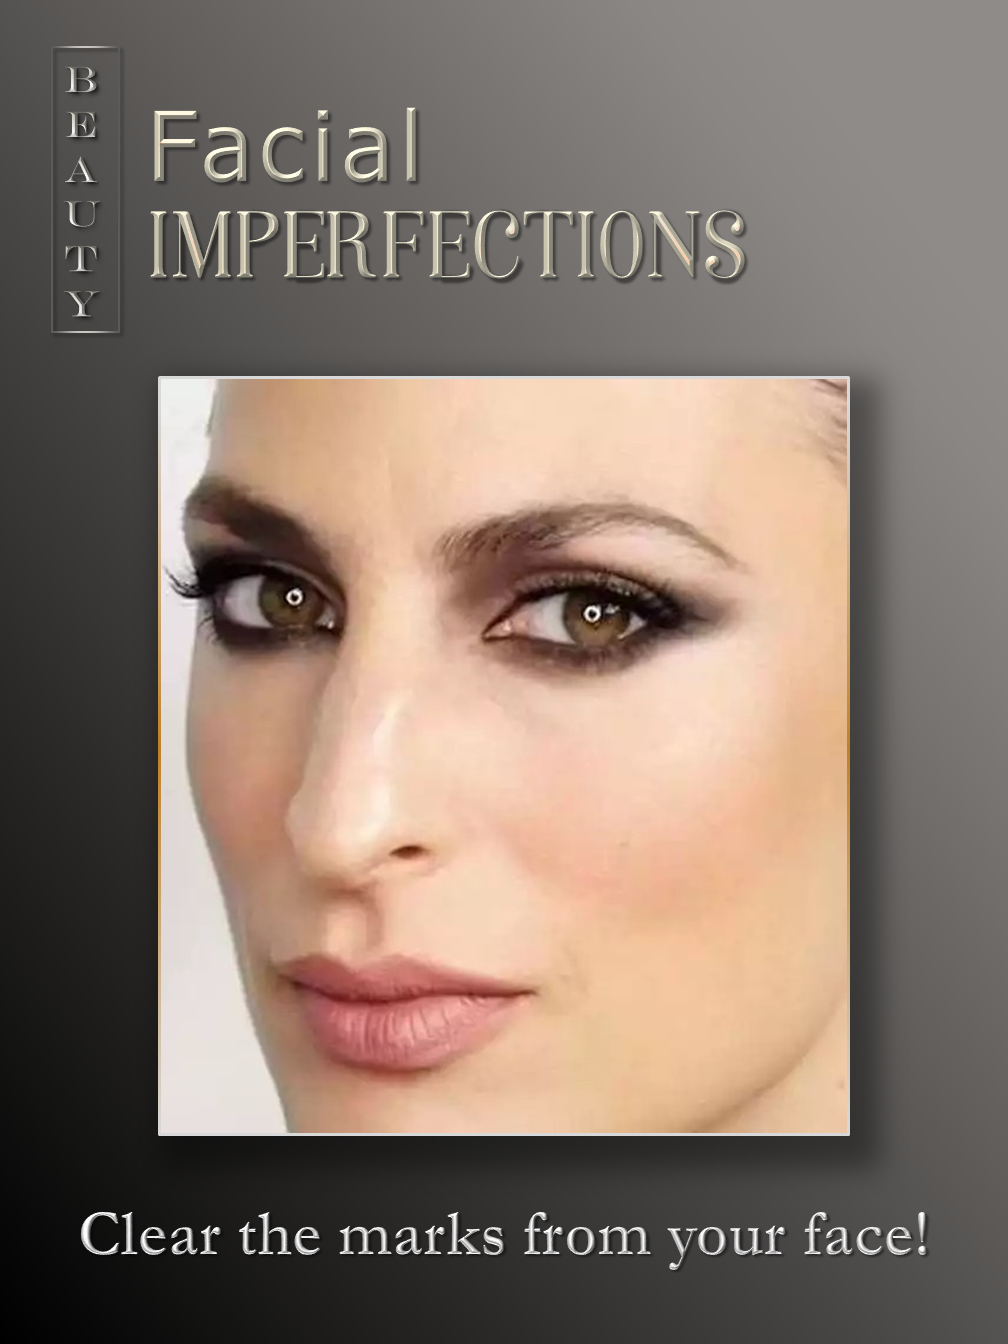 Facial Imperfections